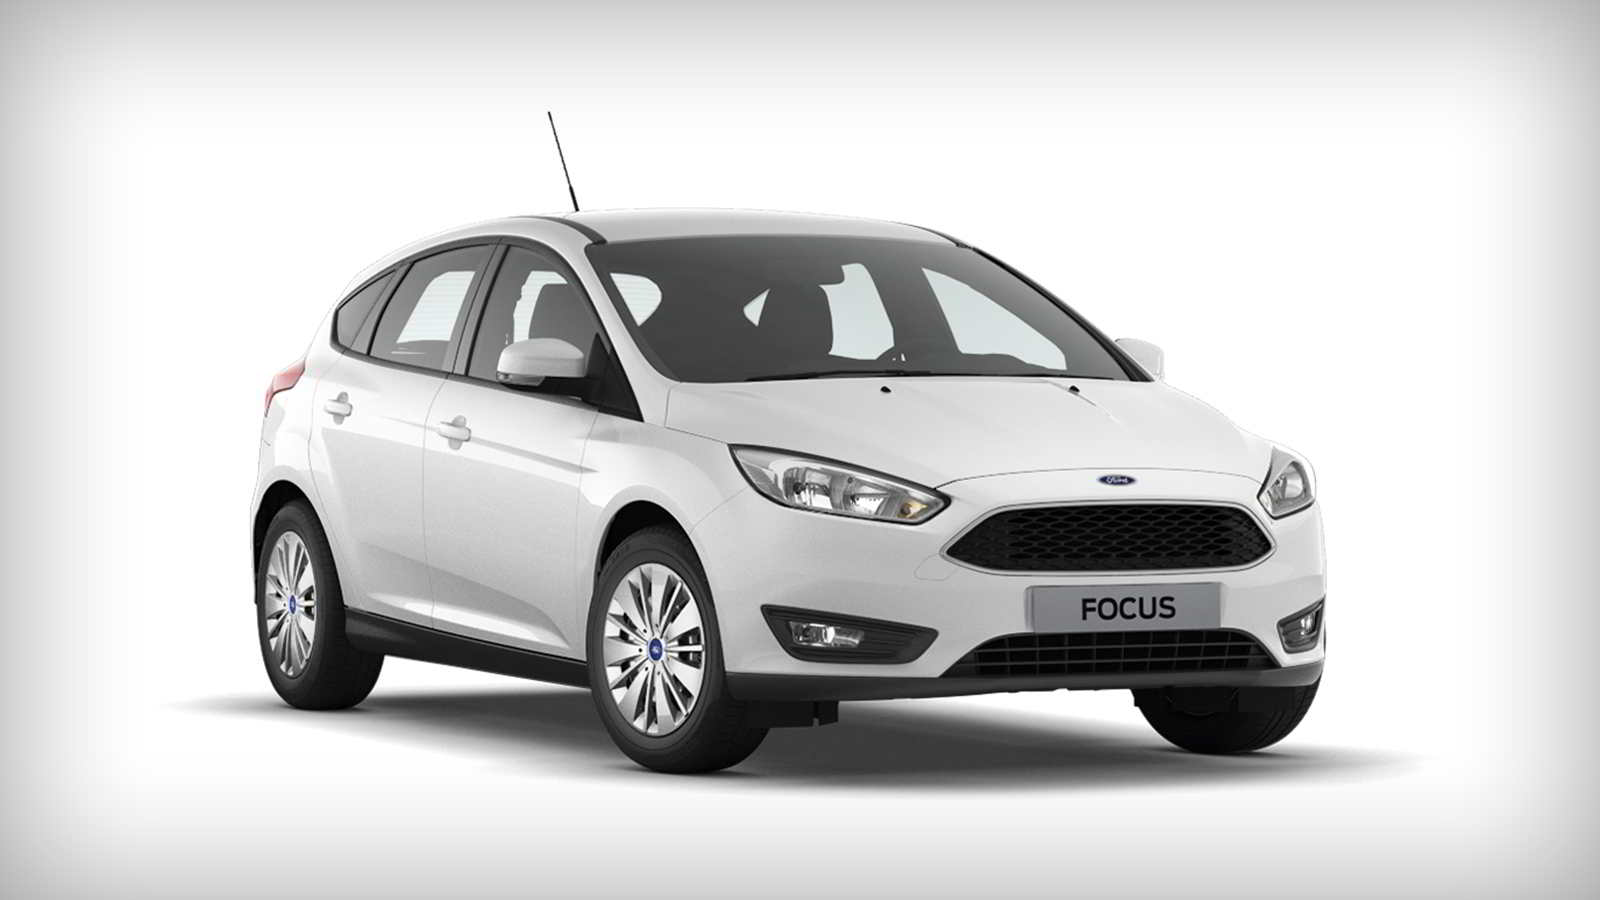 Ford Focus Ford Focus хэтчбек Frozen Whiteэтчбек Frozen White